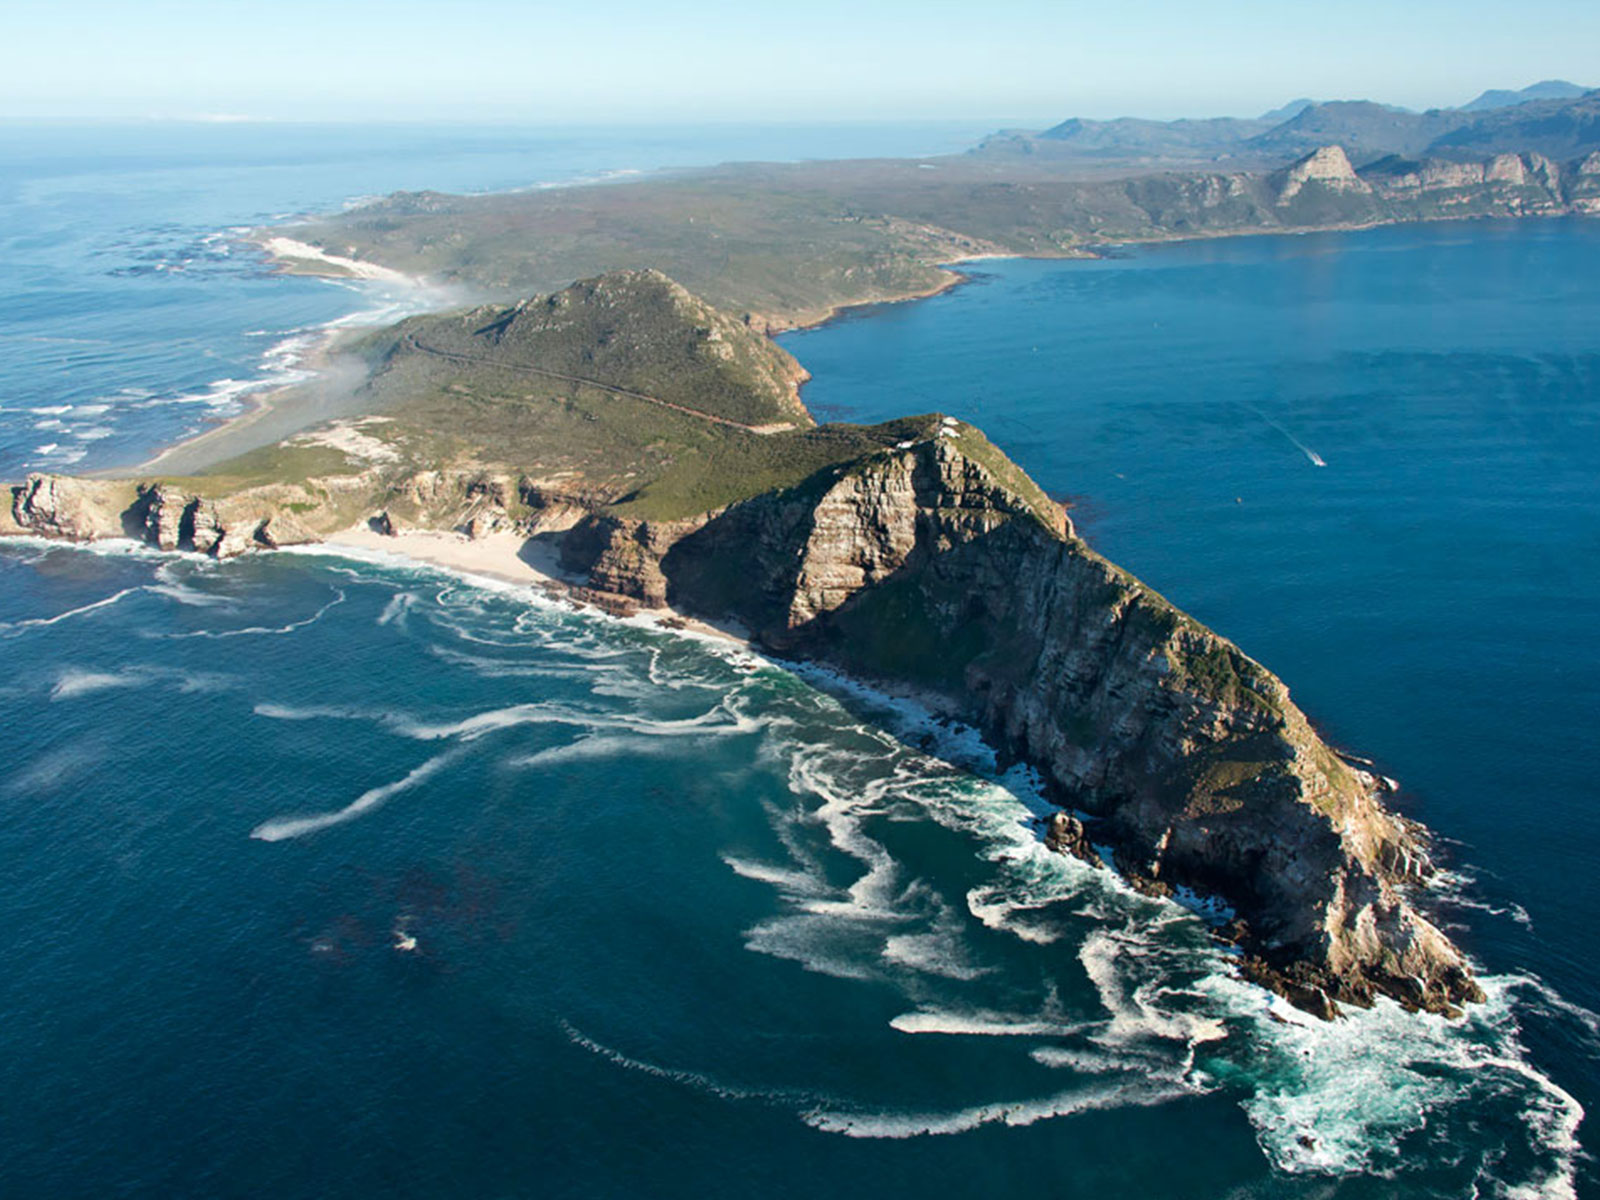 Cape Peninsula & Cape point tour - A must see! Imagine standing on the southern tip of the African continent! The Cape peninsula makes for a spectacular scenic drive along Africa's south western tip.